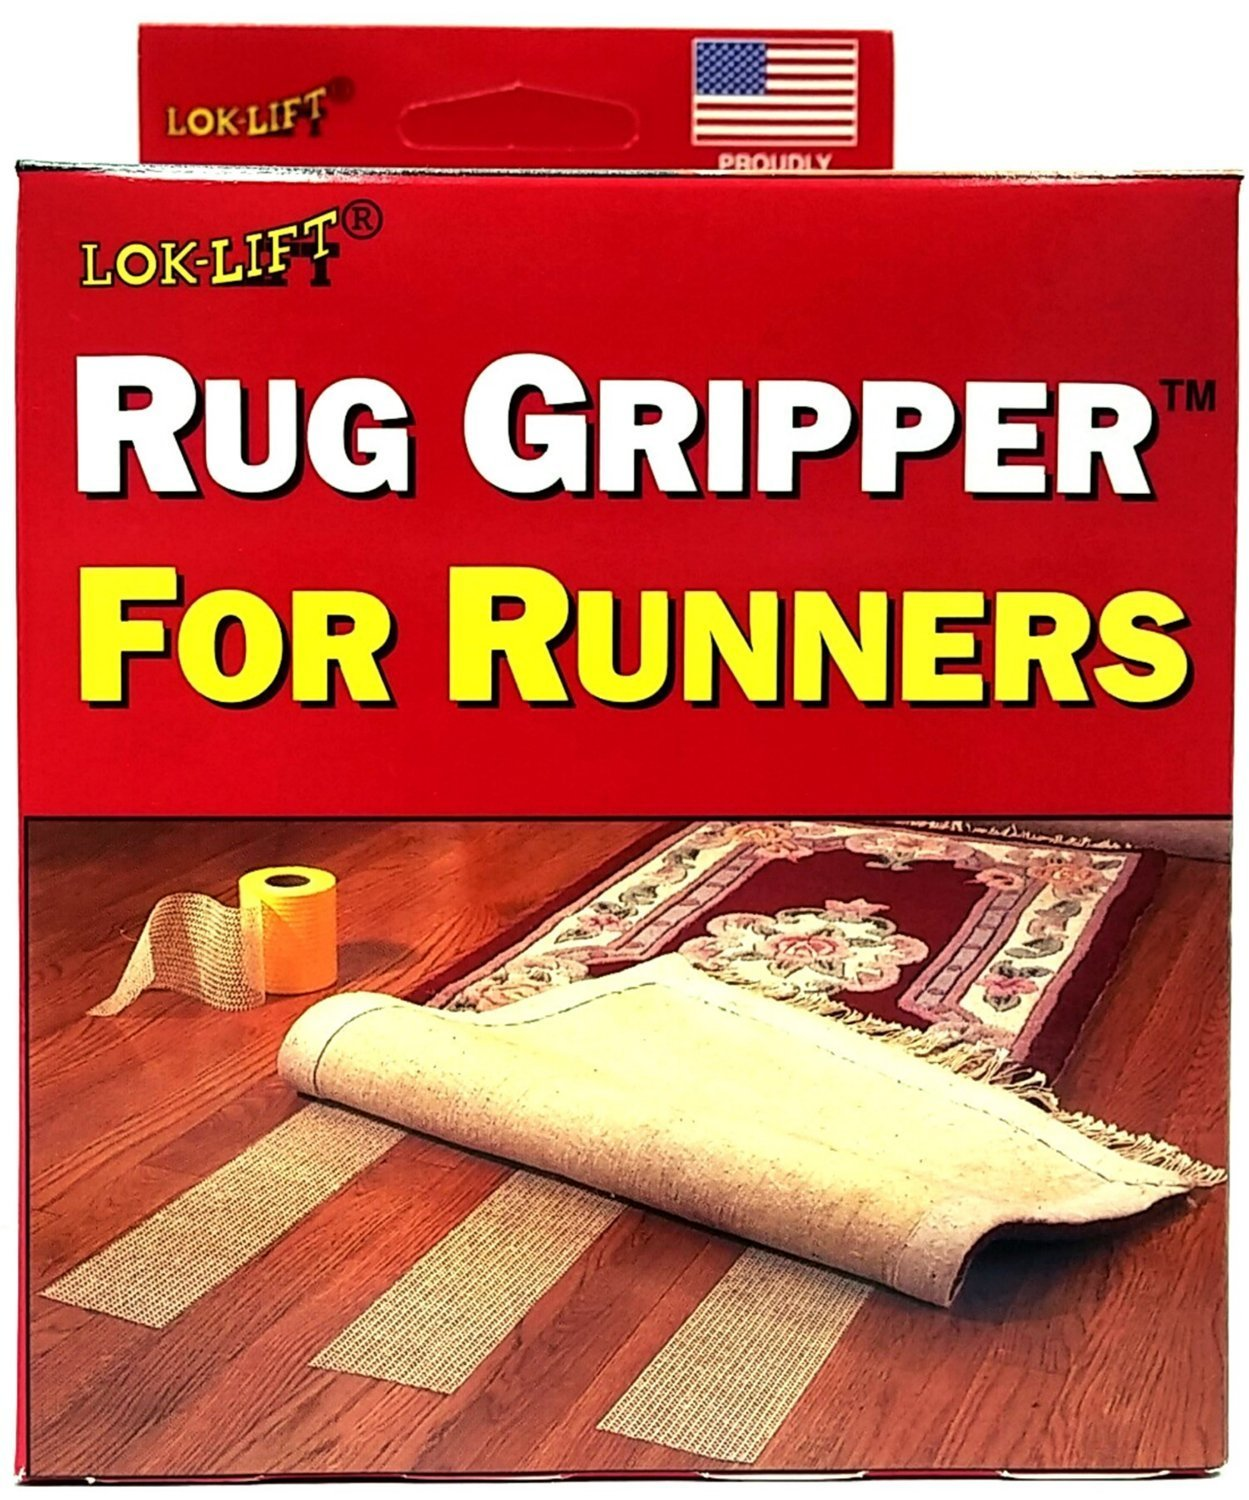 Lok-Lift Rug Gripper for Runners Non-slip Tape, 4-Inch by 25-Feet (Pack of 2) by Optimum Technologies